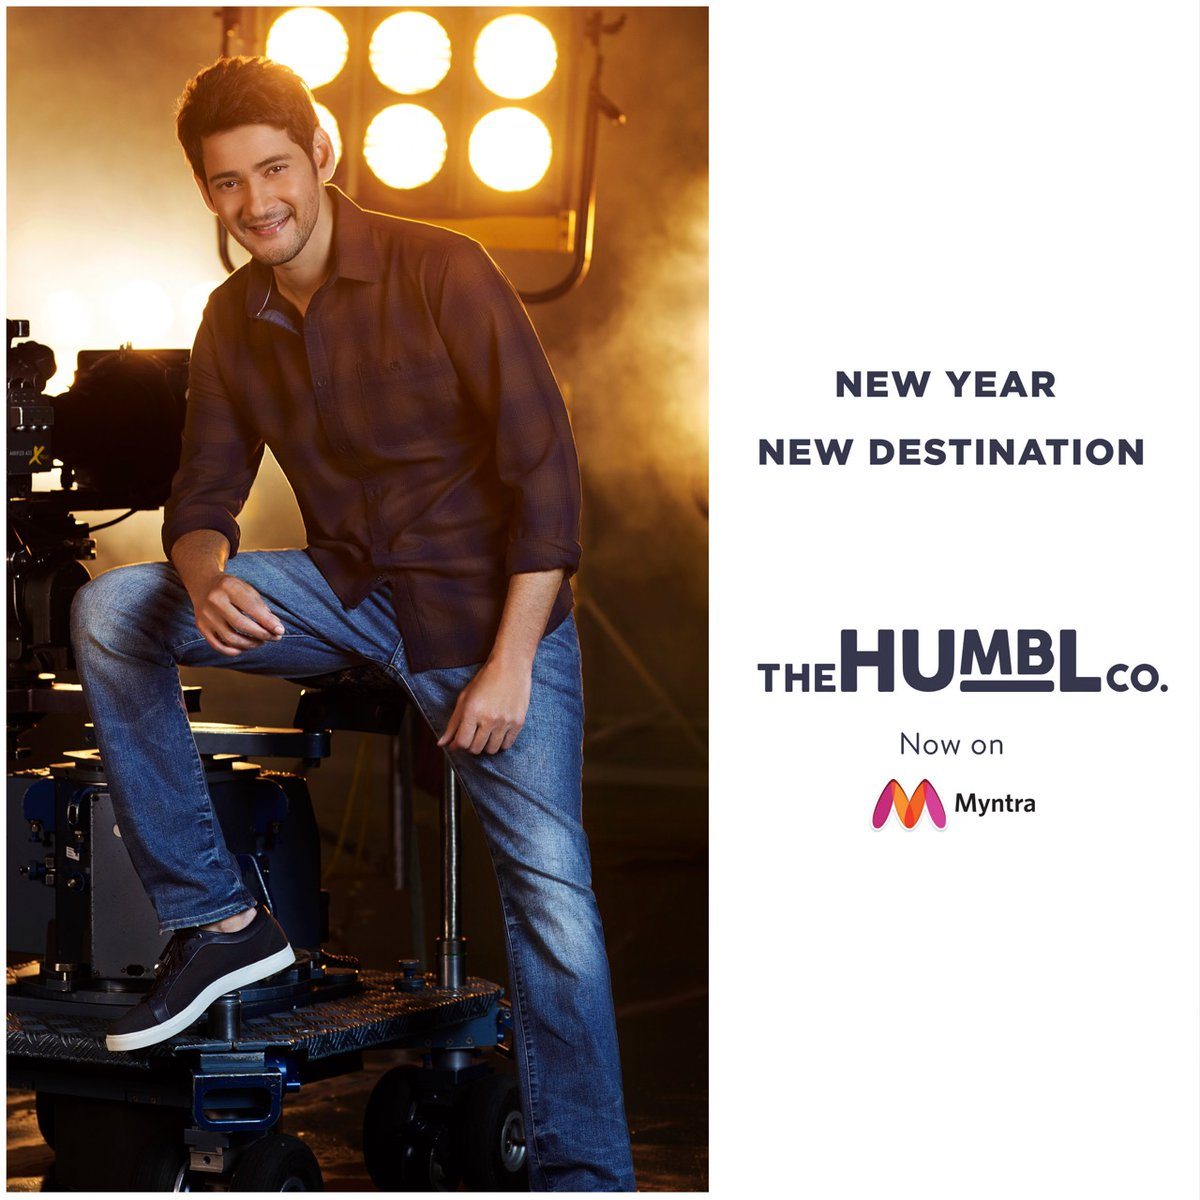 Hey Guys, the biggest collab of 2020 has happened. Im glad to announce the launch of @thehumblco. on @myntra. All my favourite styles can now be yours. Looking forward to meet the top 3 shoppers 😉 Happy Shopping :)   #TheHumblCoxMyntra #Myntra #TheHumblCo